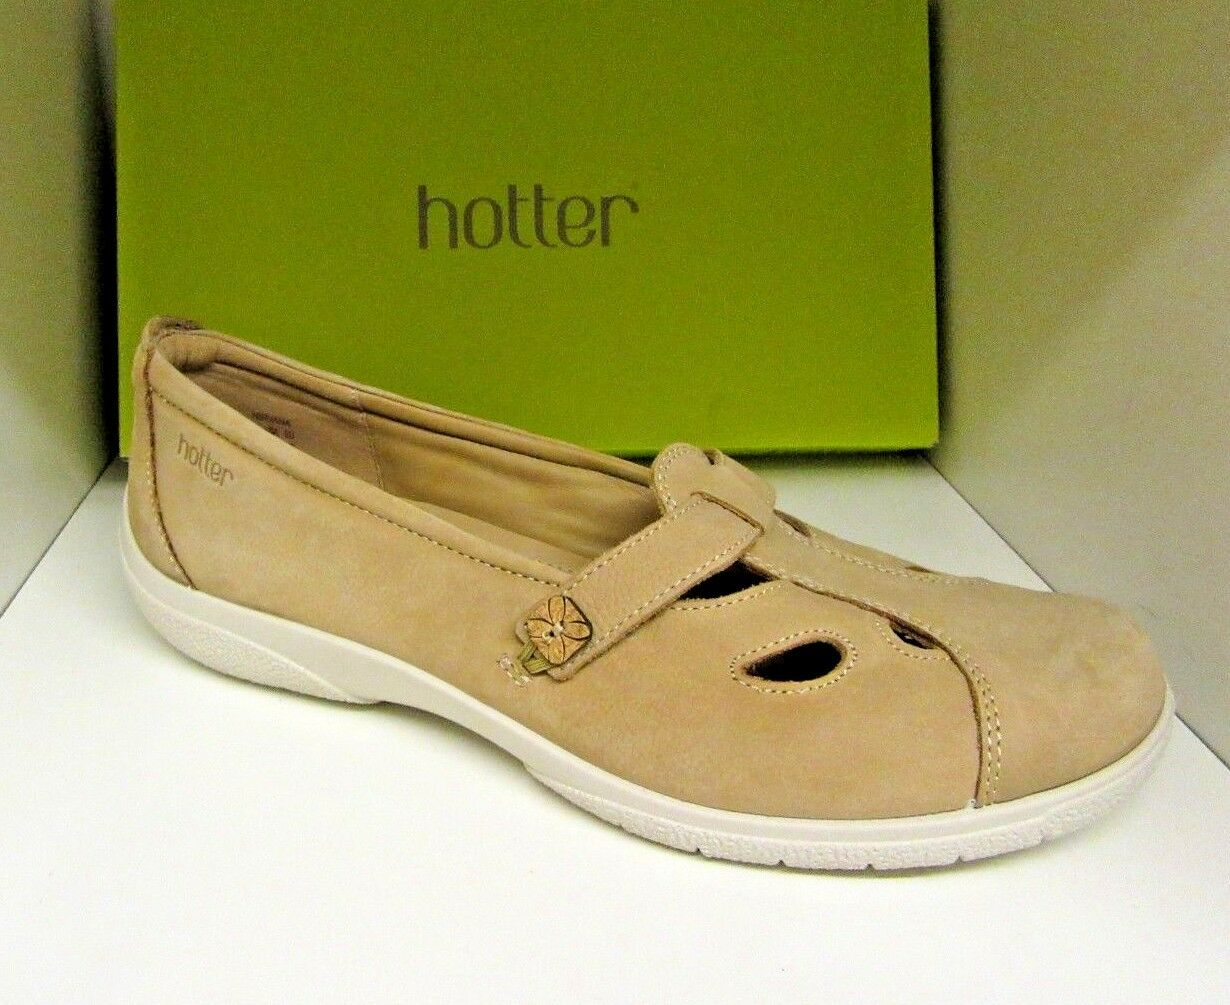 HOTTER NIRVANA BEIGE NUBUCK LEATHER SIZE 8 STANDARD BRAND NEW IN BOX